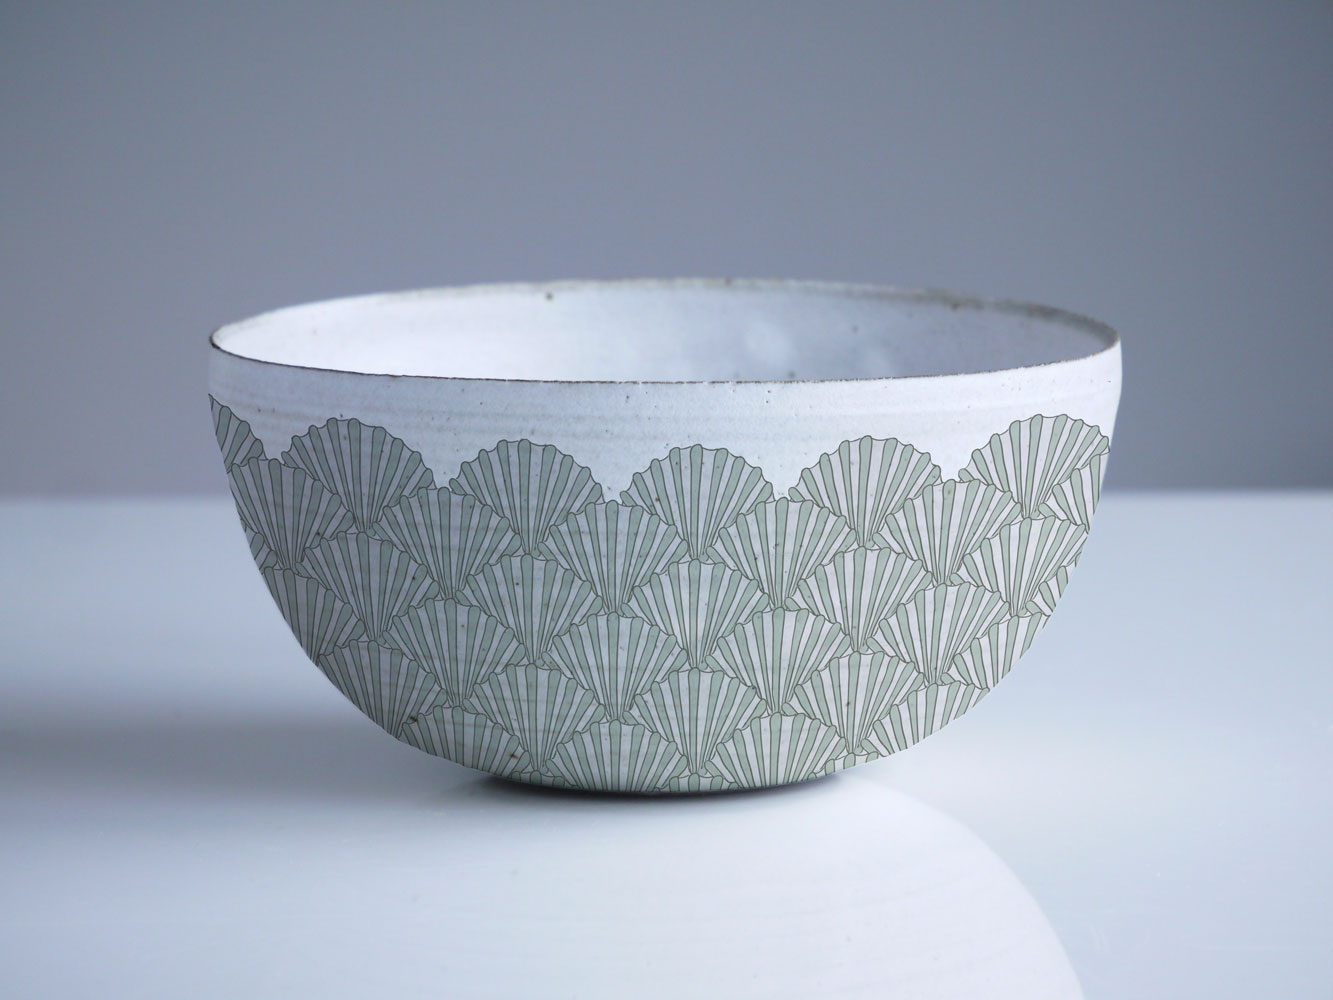 Shell Surface Pattern Design on Bowl